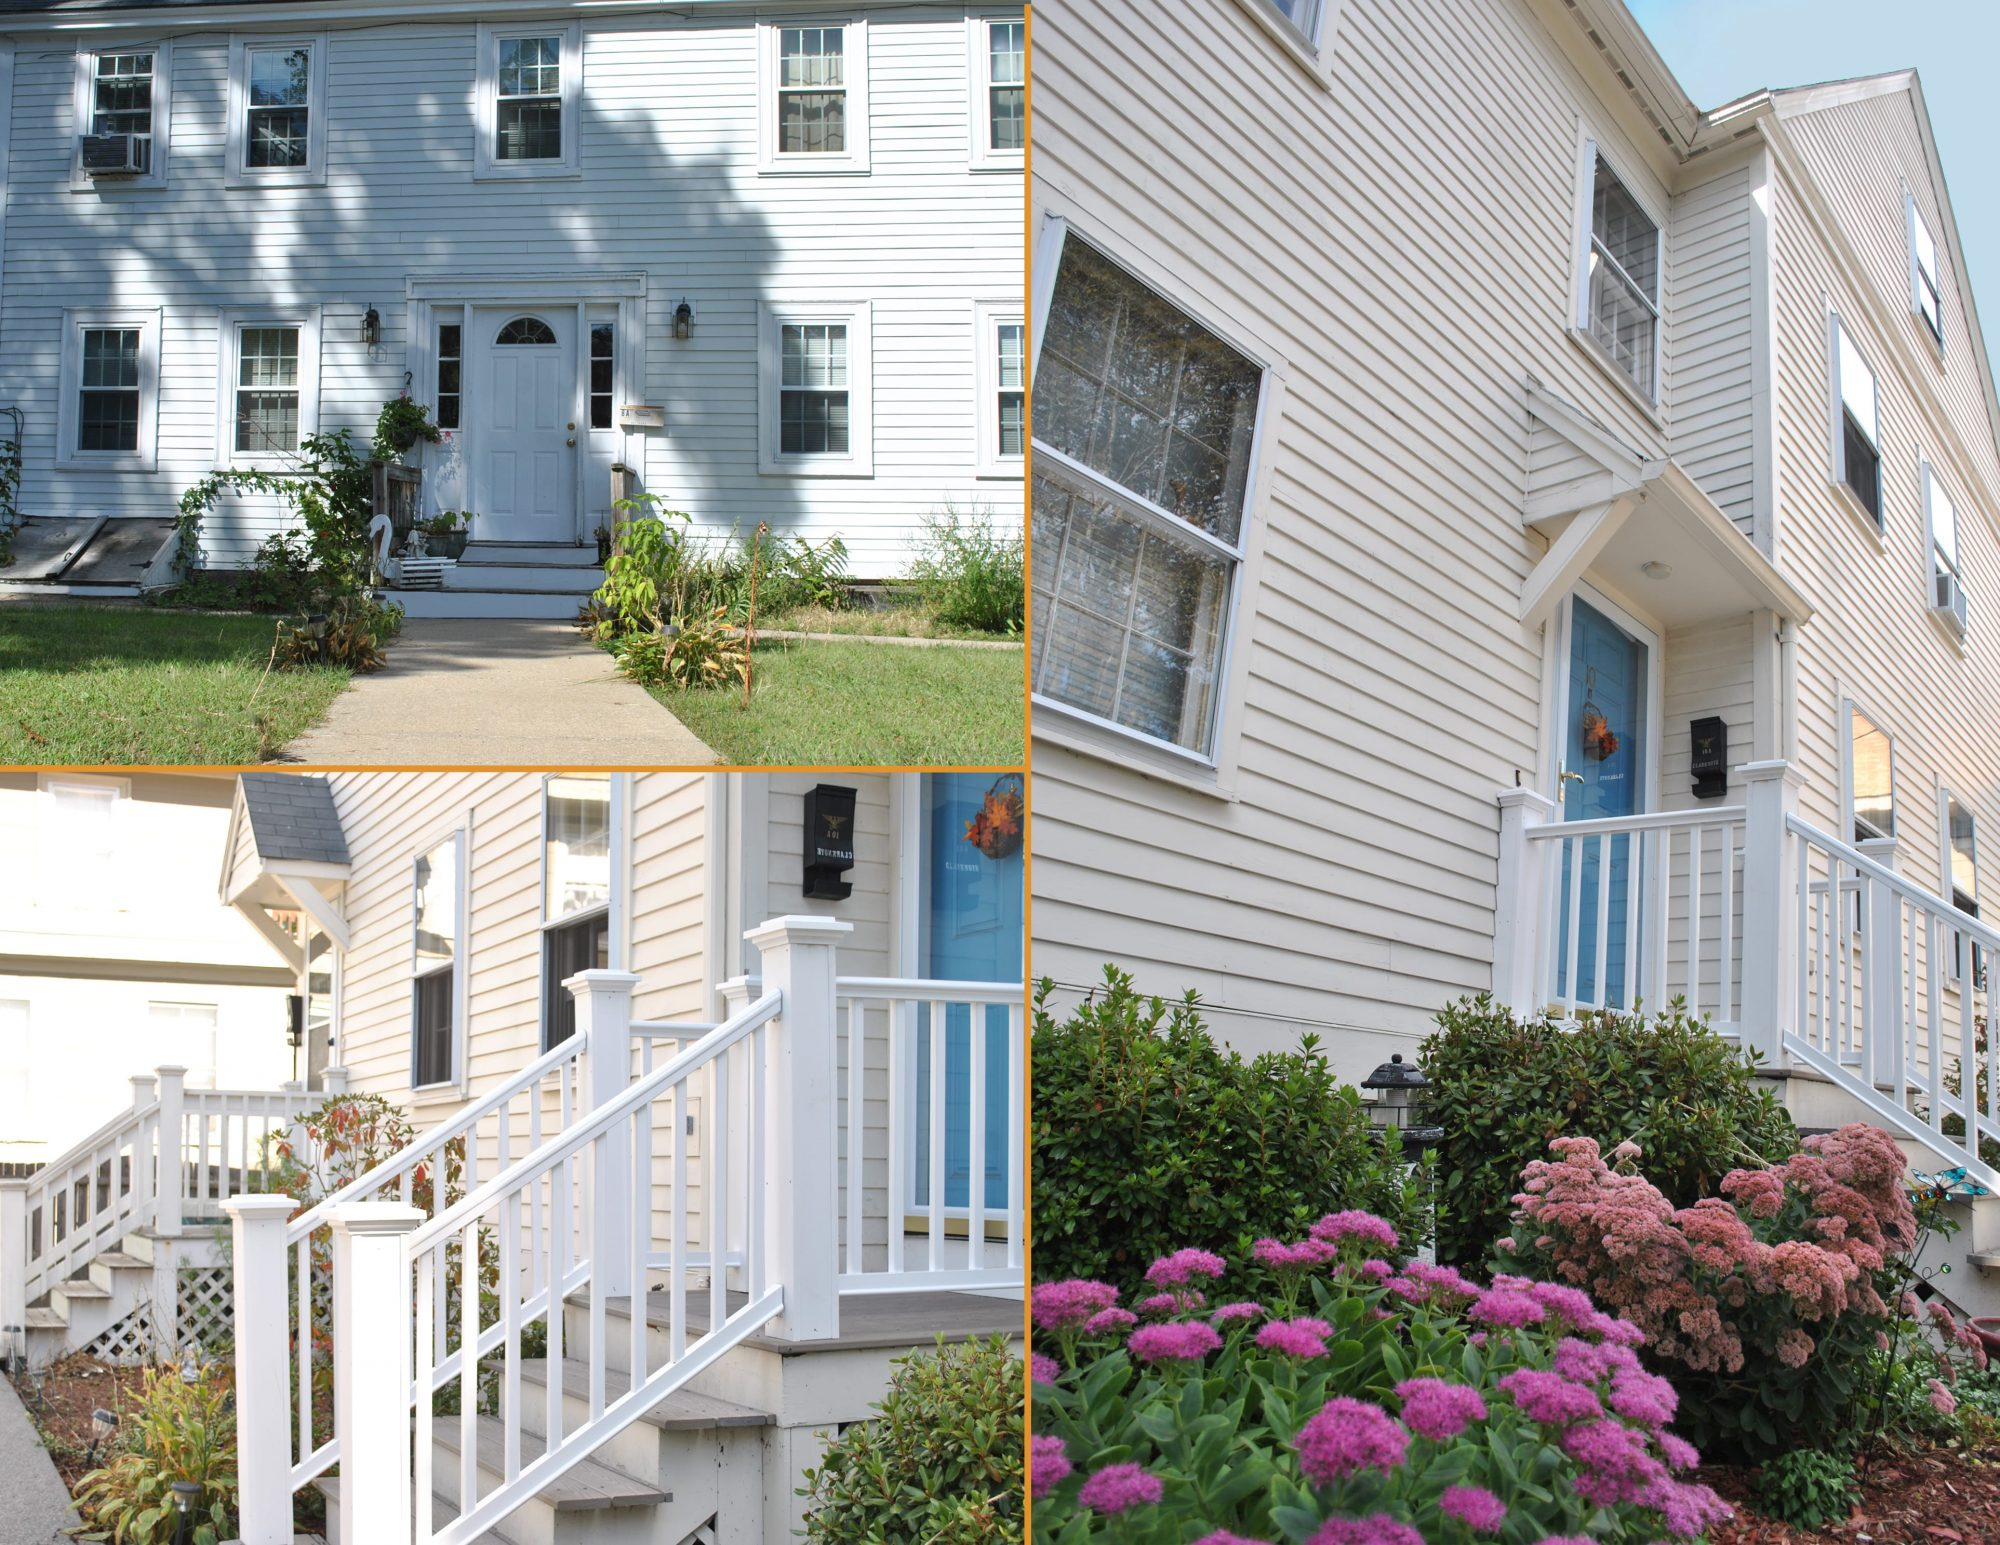 Collage of Harborlight houses